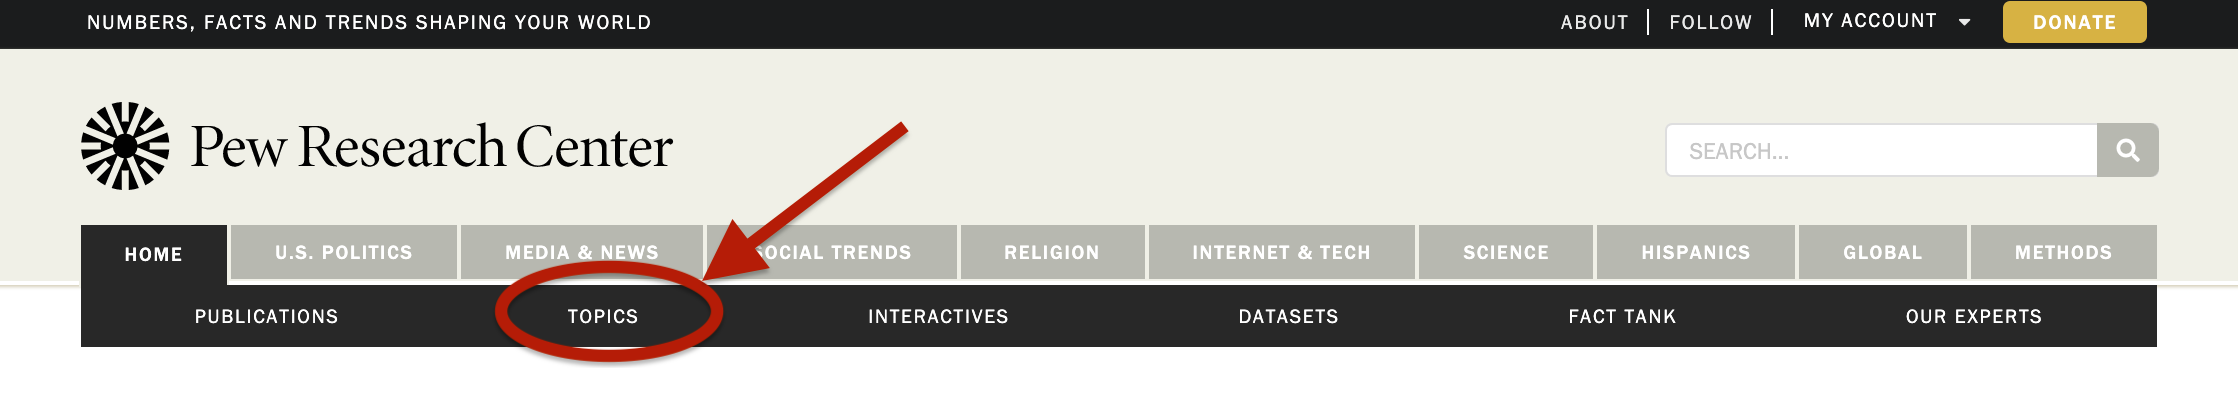 Screenshot of Pew Research Center homepage, with Topics button circled and an arrow pointing to it.